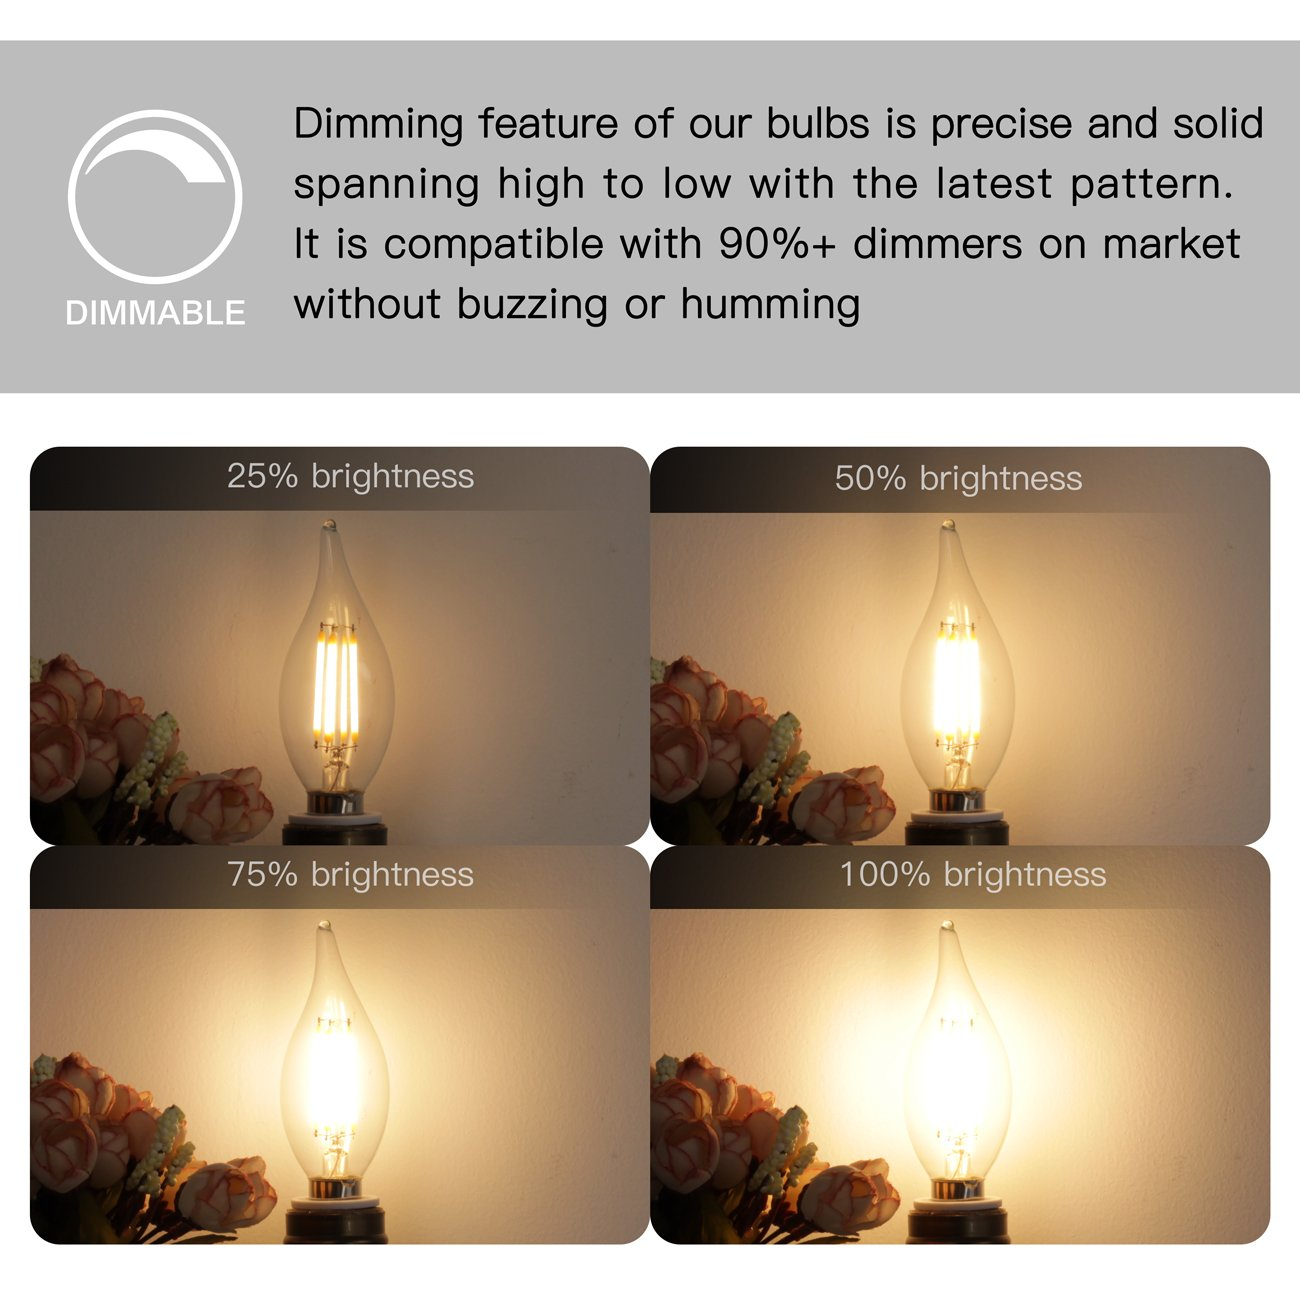 E12 LED Candelabra Bulb 60W Equivalent Dimmable LED Chandelier Light Bulbs 6W 2700K Warm White 550LM CA11 Flame Tip Vintage LED Filament Candle Bulb with Decorative Candelabra Base, 6 Packs, by Boncoo by Boncoo (Image #4)